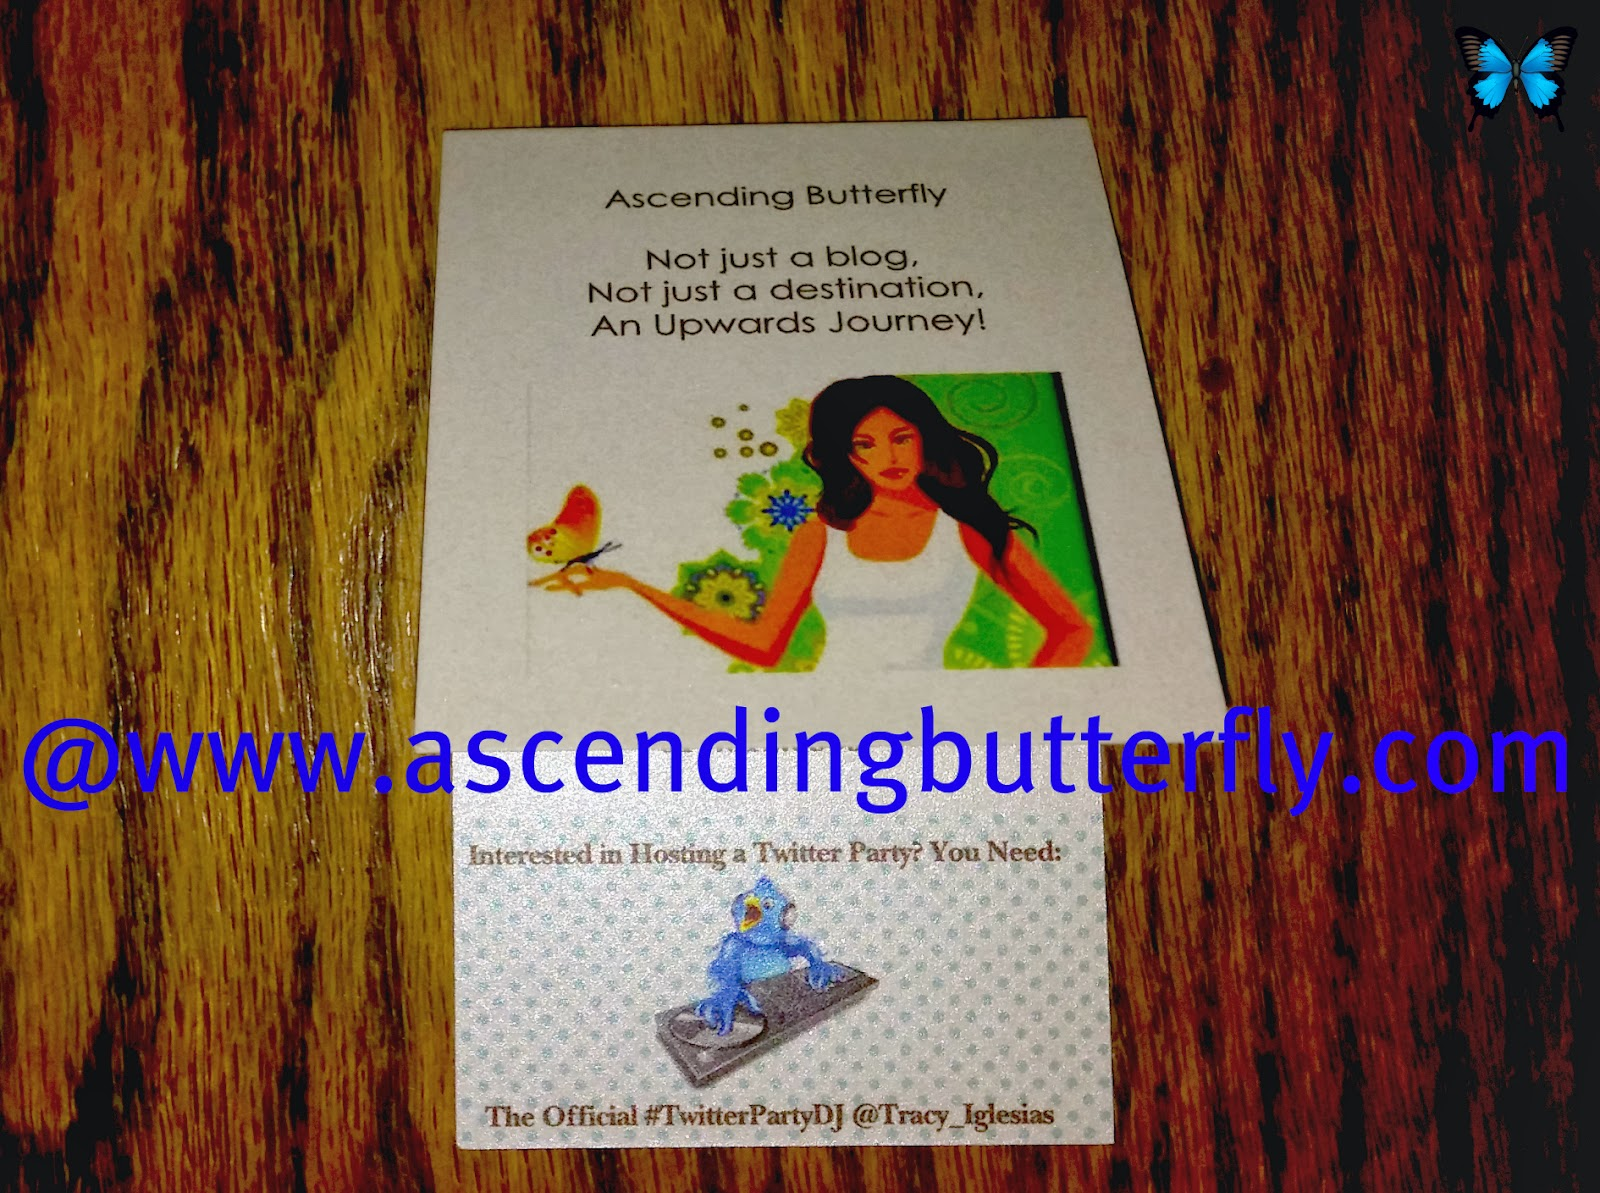 Ascending Butterfly: June 2016